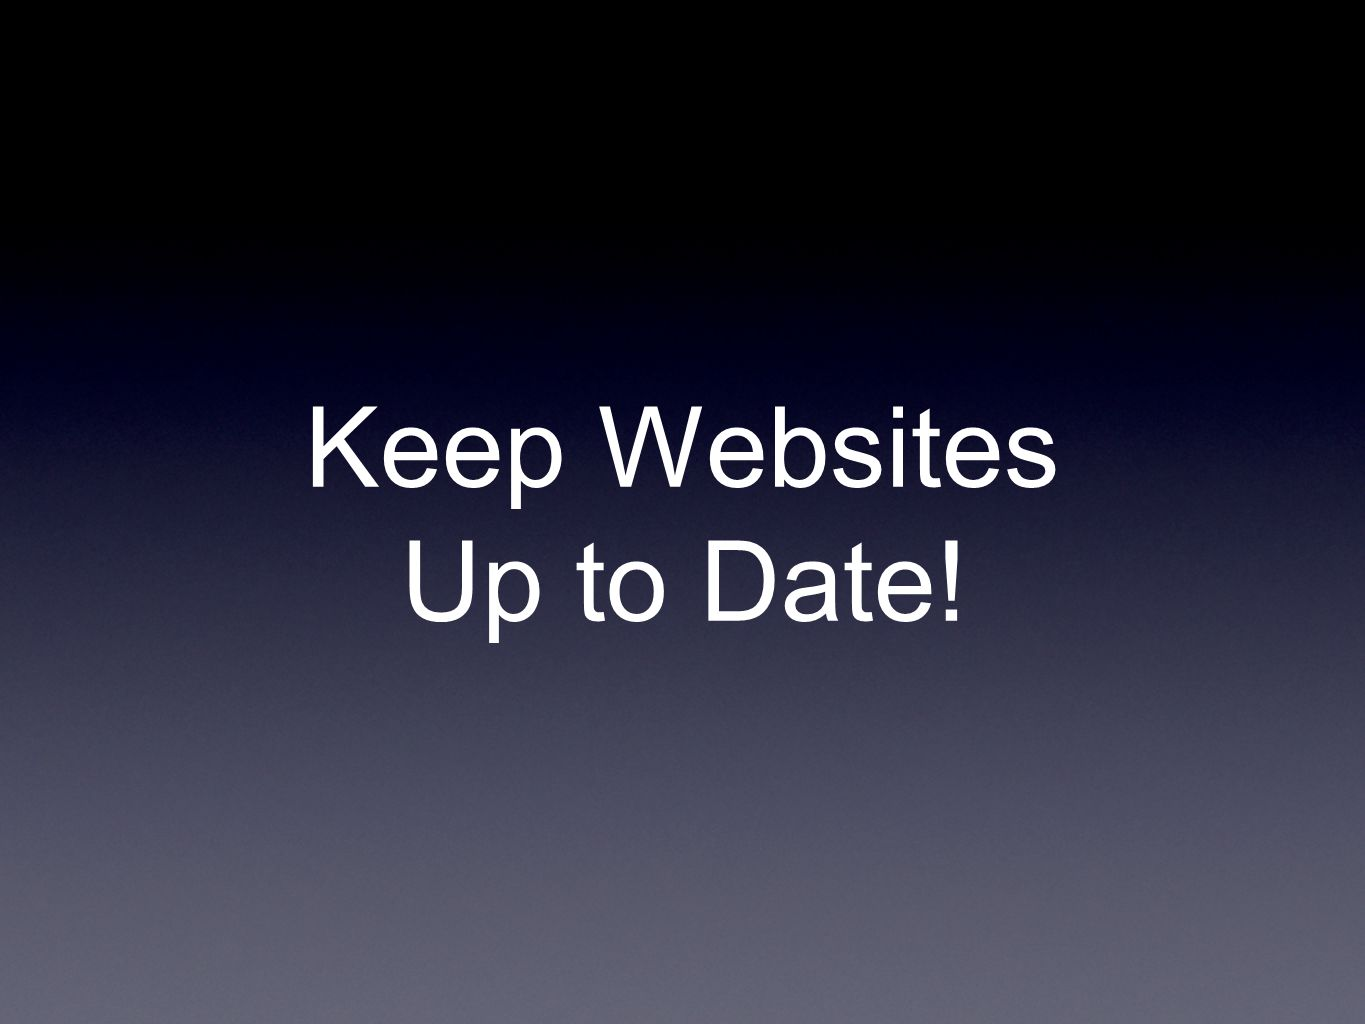 Keep Websites Up to Date!